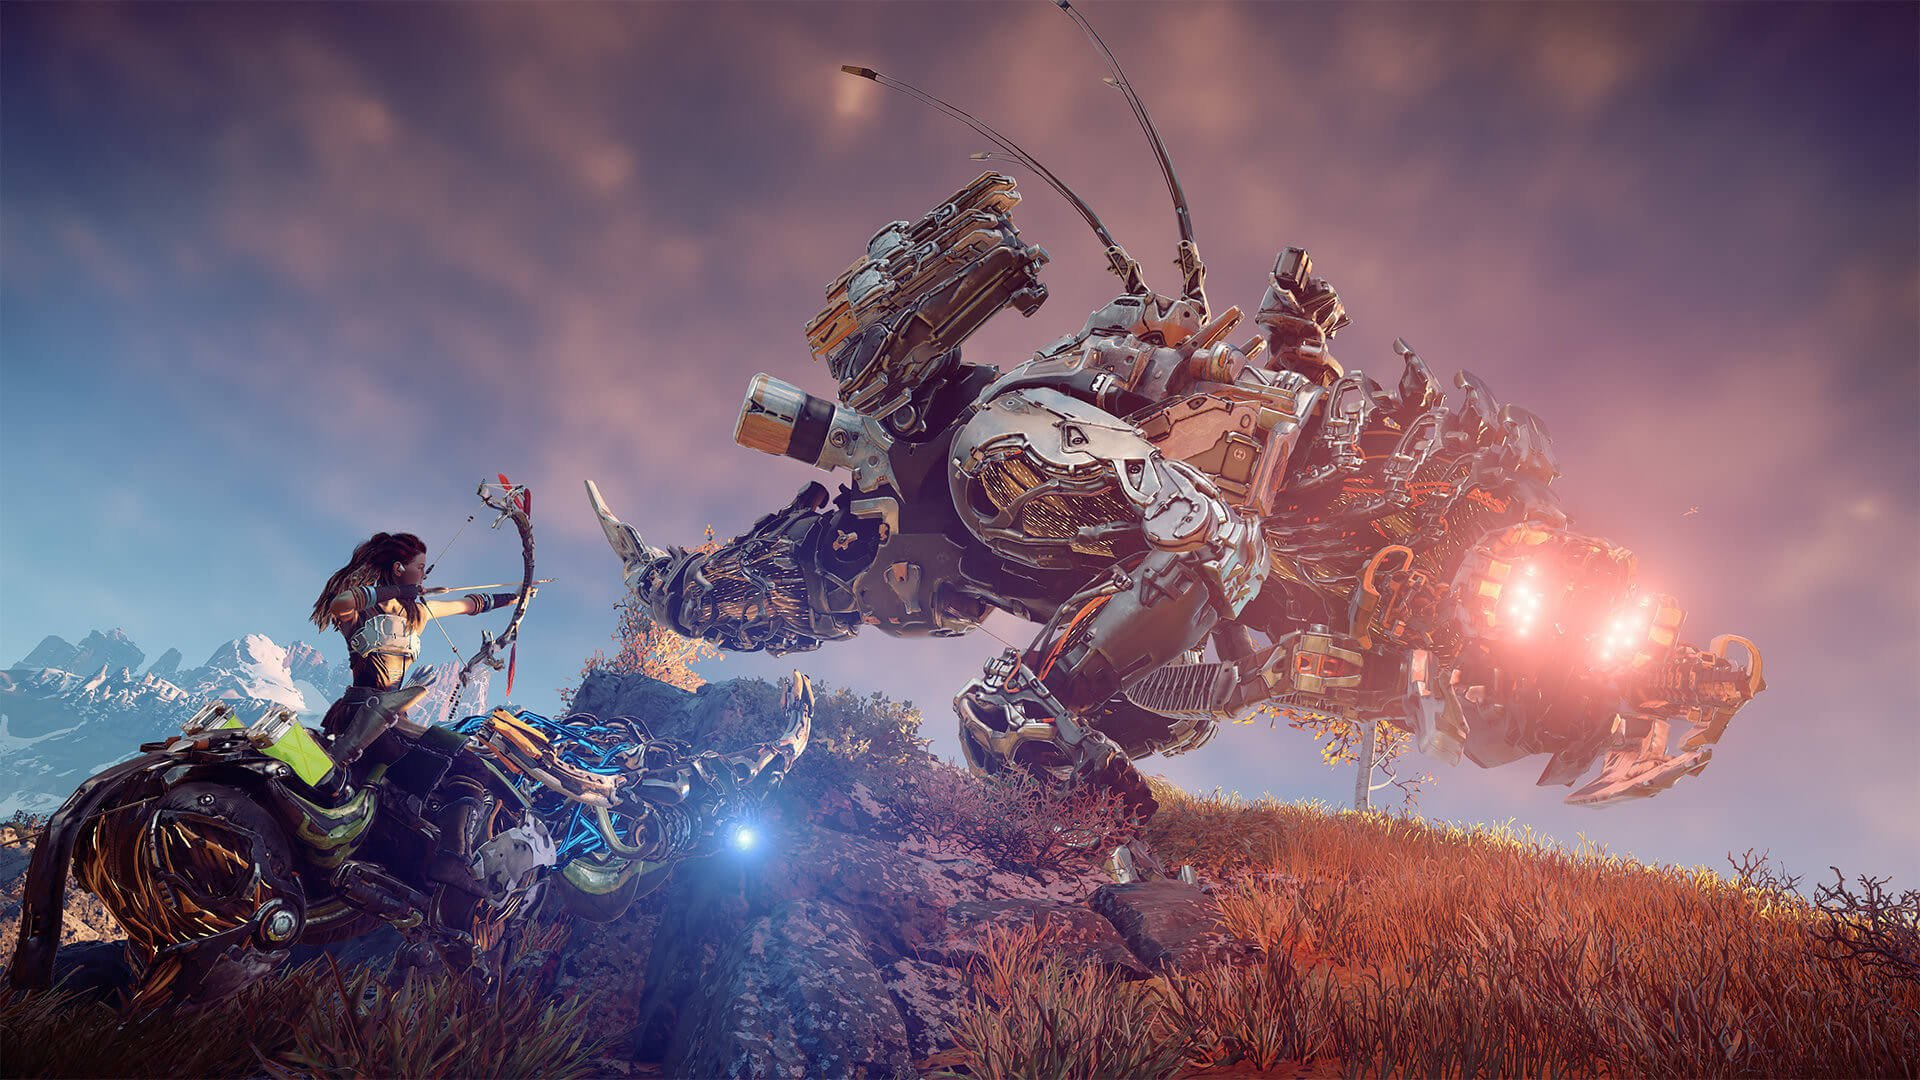 Horizon Zero Dawn: Complete Edition Is Now Free On PS4 and PS5